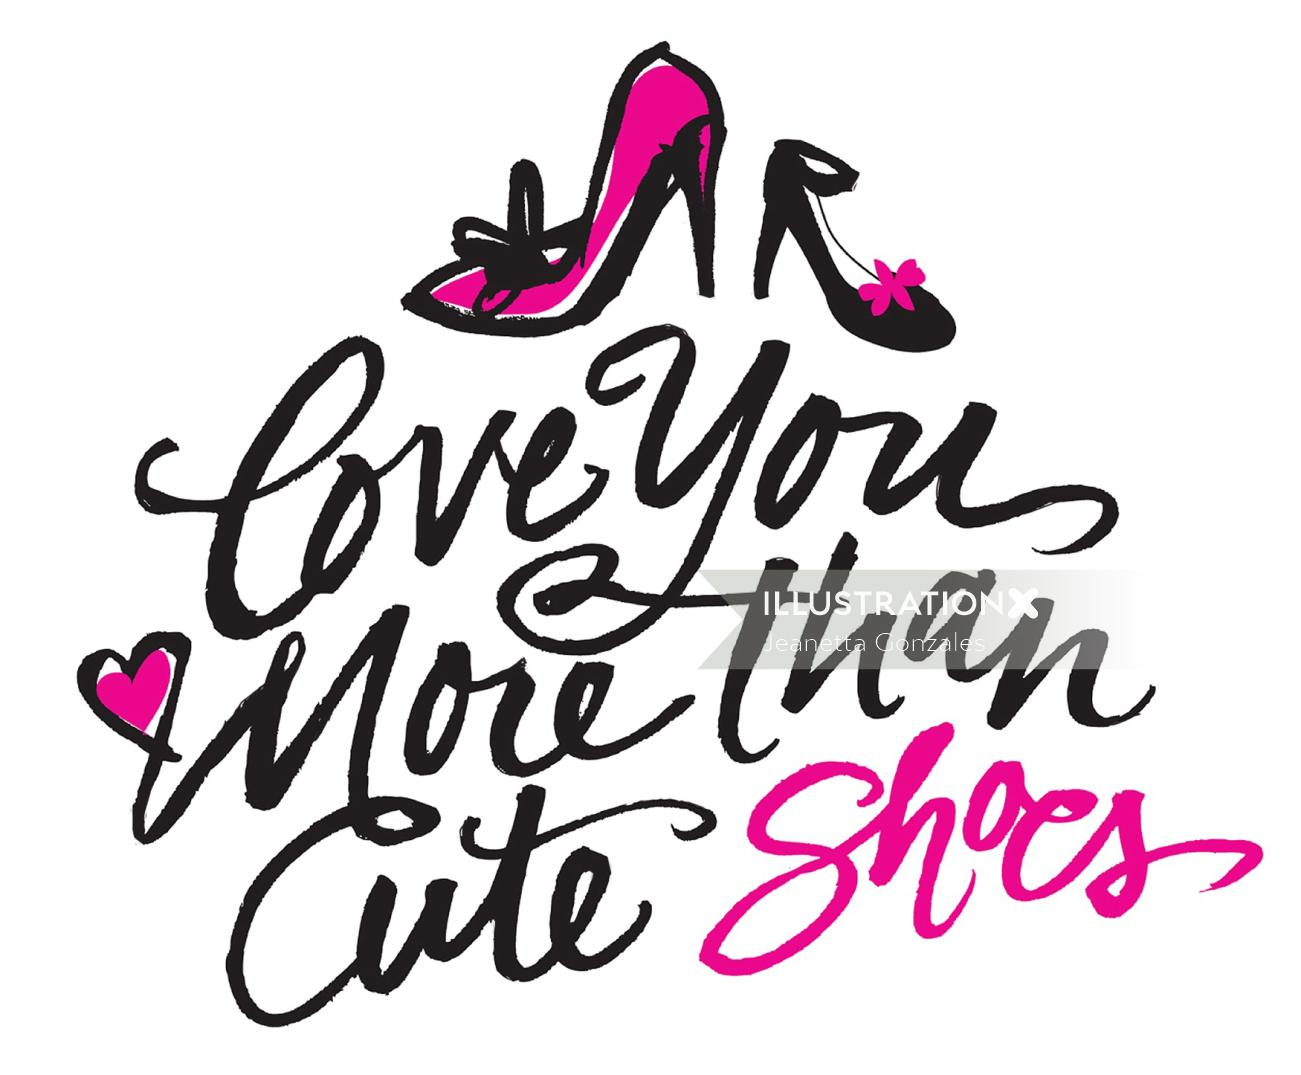 Typography illustration of Love you more than cute shoes